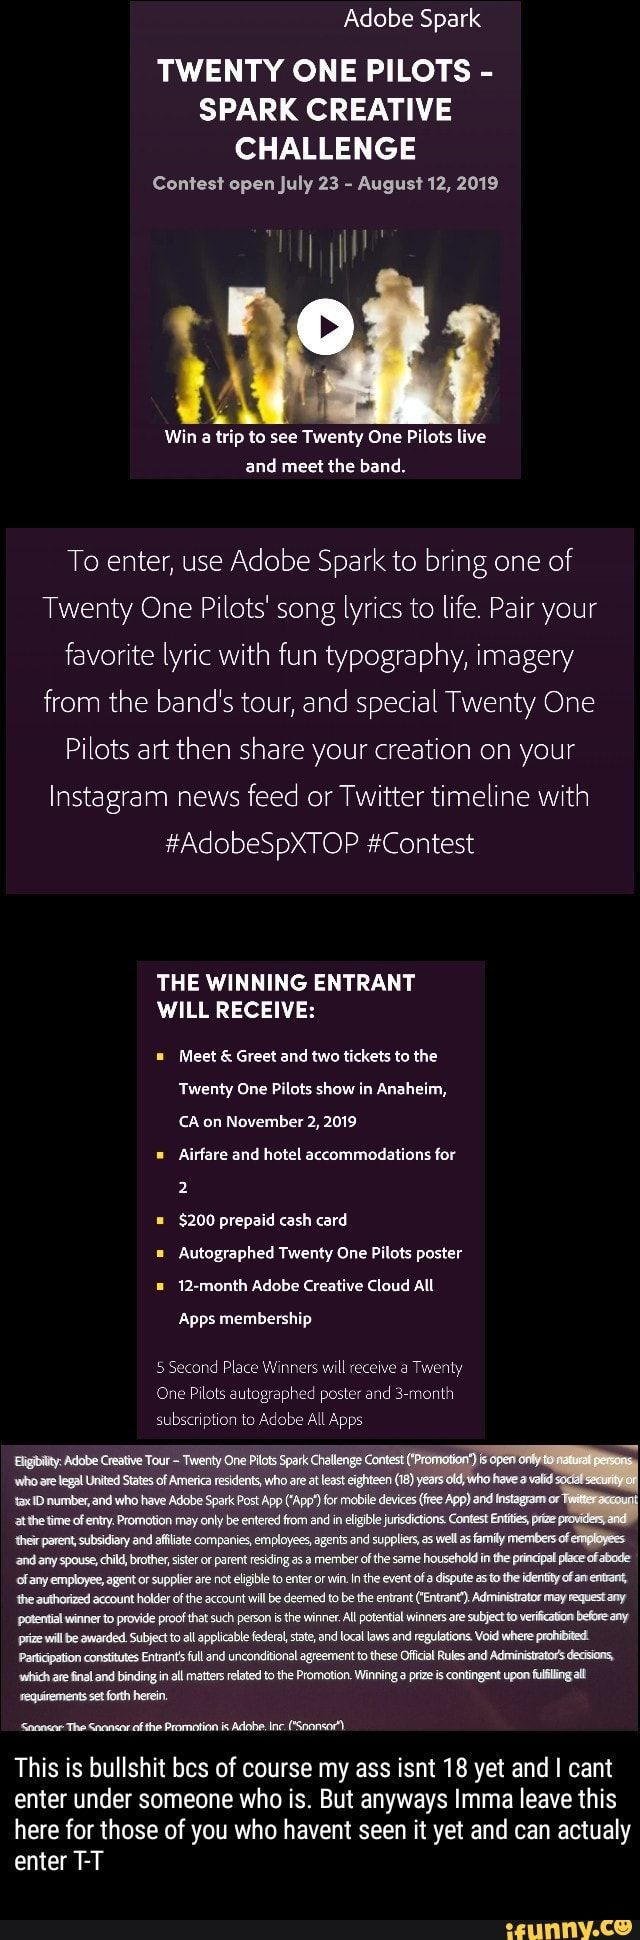 Twenty One Pilots Spark Creative Challenge Comes Open July 23 Augus 12 2019 And Meet The Band To Enter Use Adobe Spark To Bring One Of Twenty One Pilots One Pilots